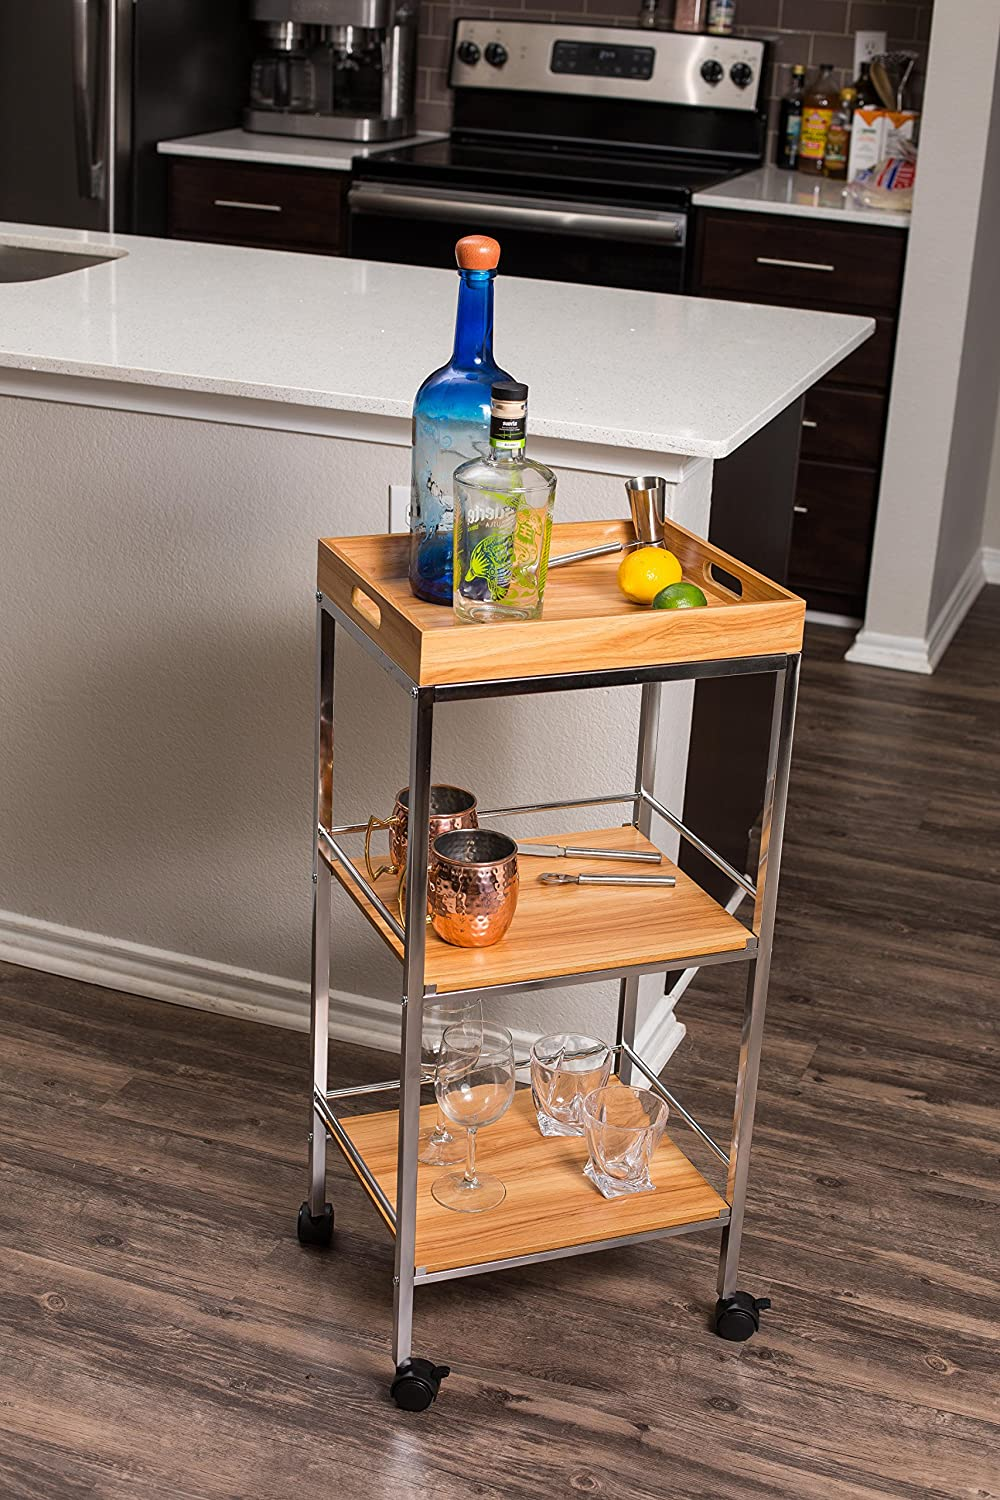 BIRDROCK HOME 3-Tier Rolling Bar Serving Cart Kitchen Bathroom Trolley with Locking Wheels Removable Trays Portable Metal Utility Storage Tea Coffee Drink Home Cart